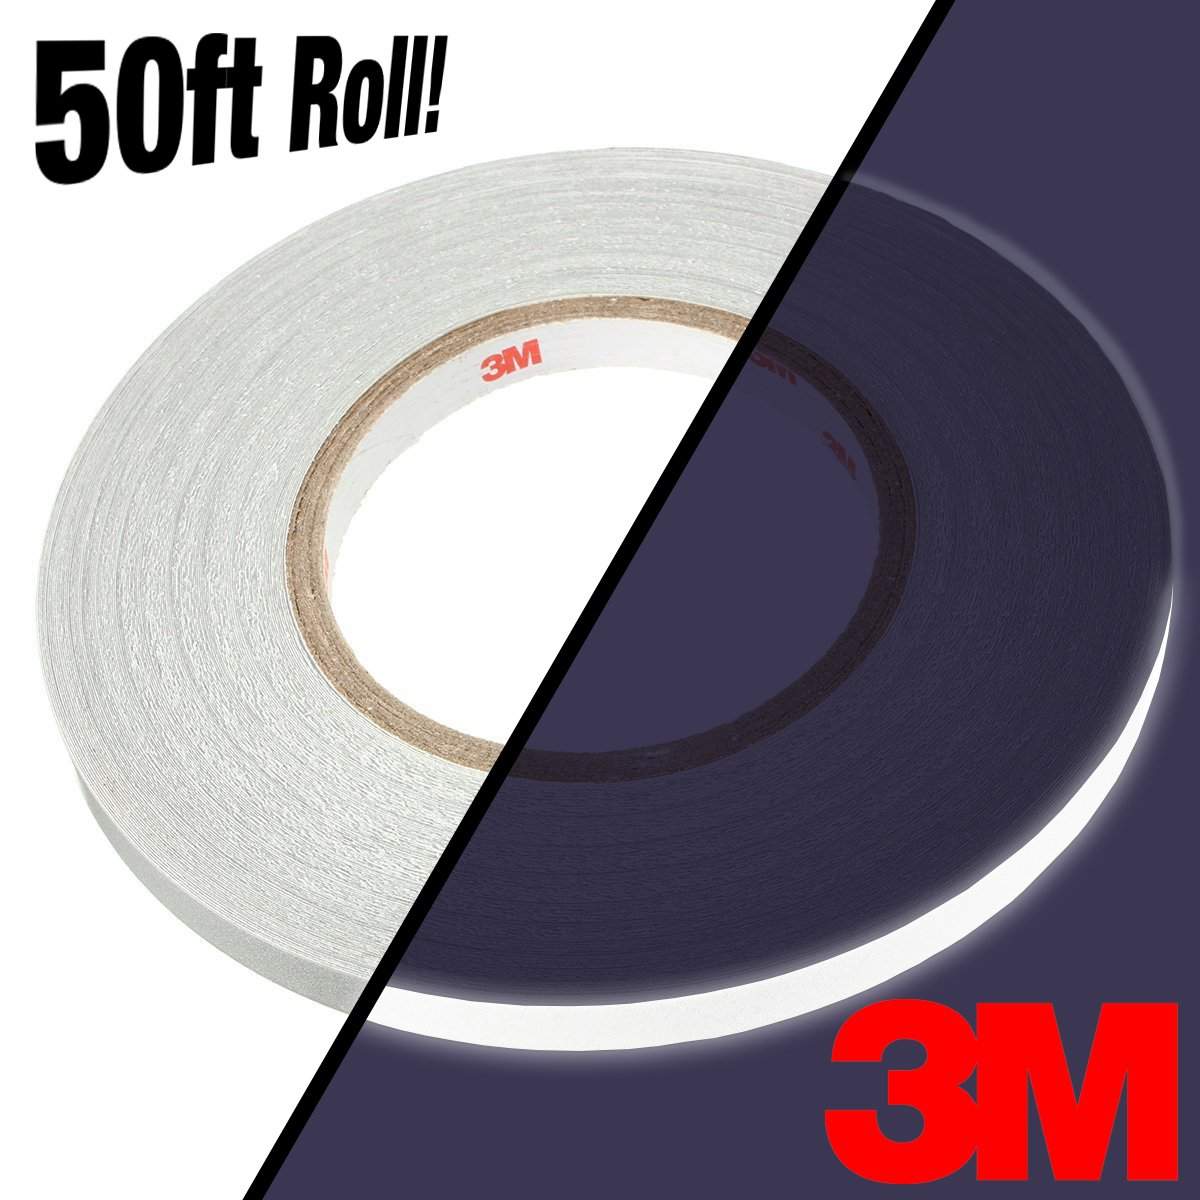 3M Silver White Reflective Automotive Adhesive Vinyl 50ft Bulk Roll 3//4 x 50ft 3M Vinyl